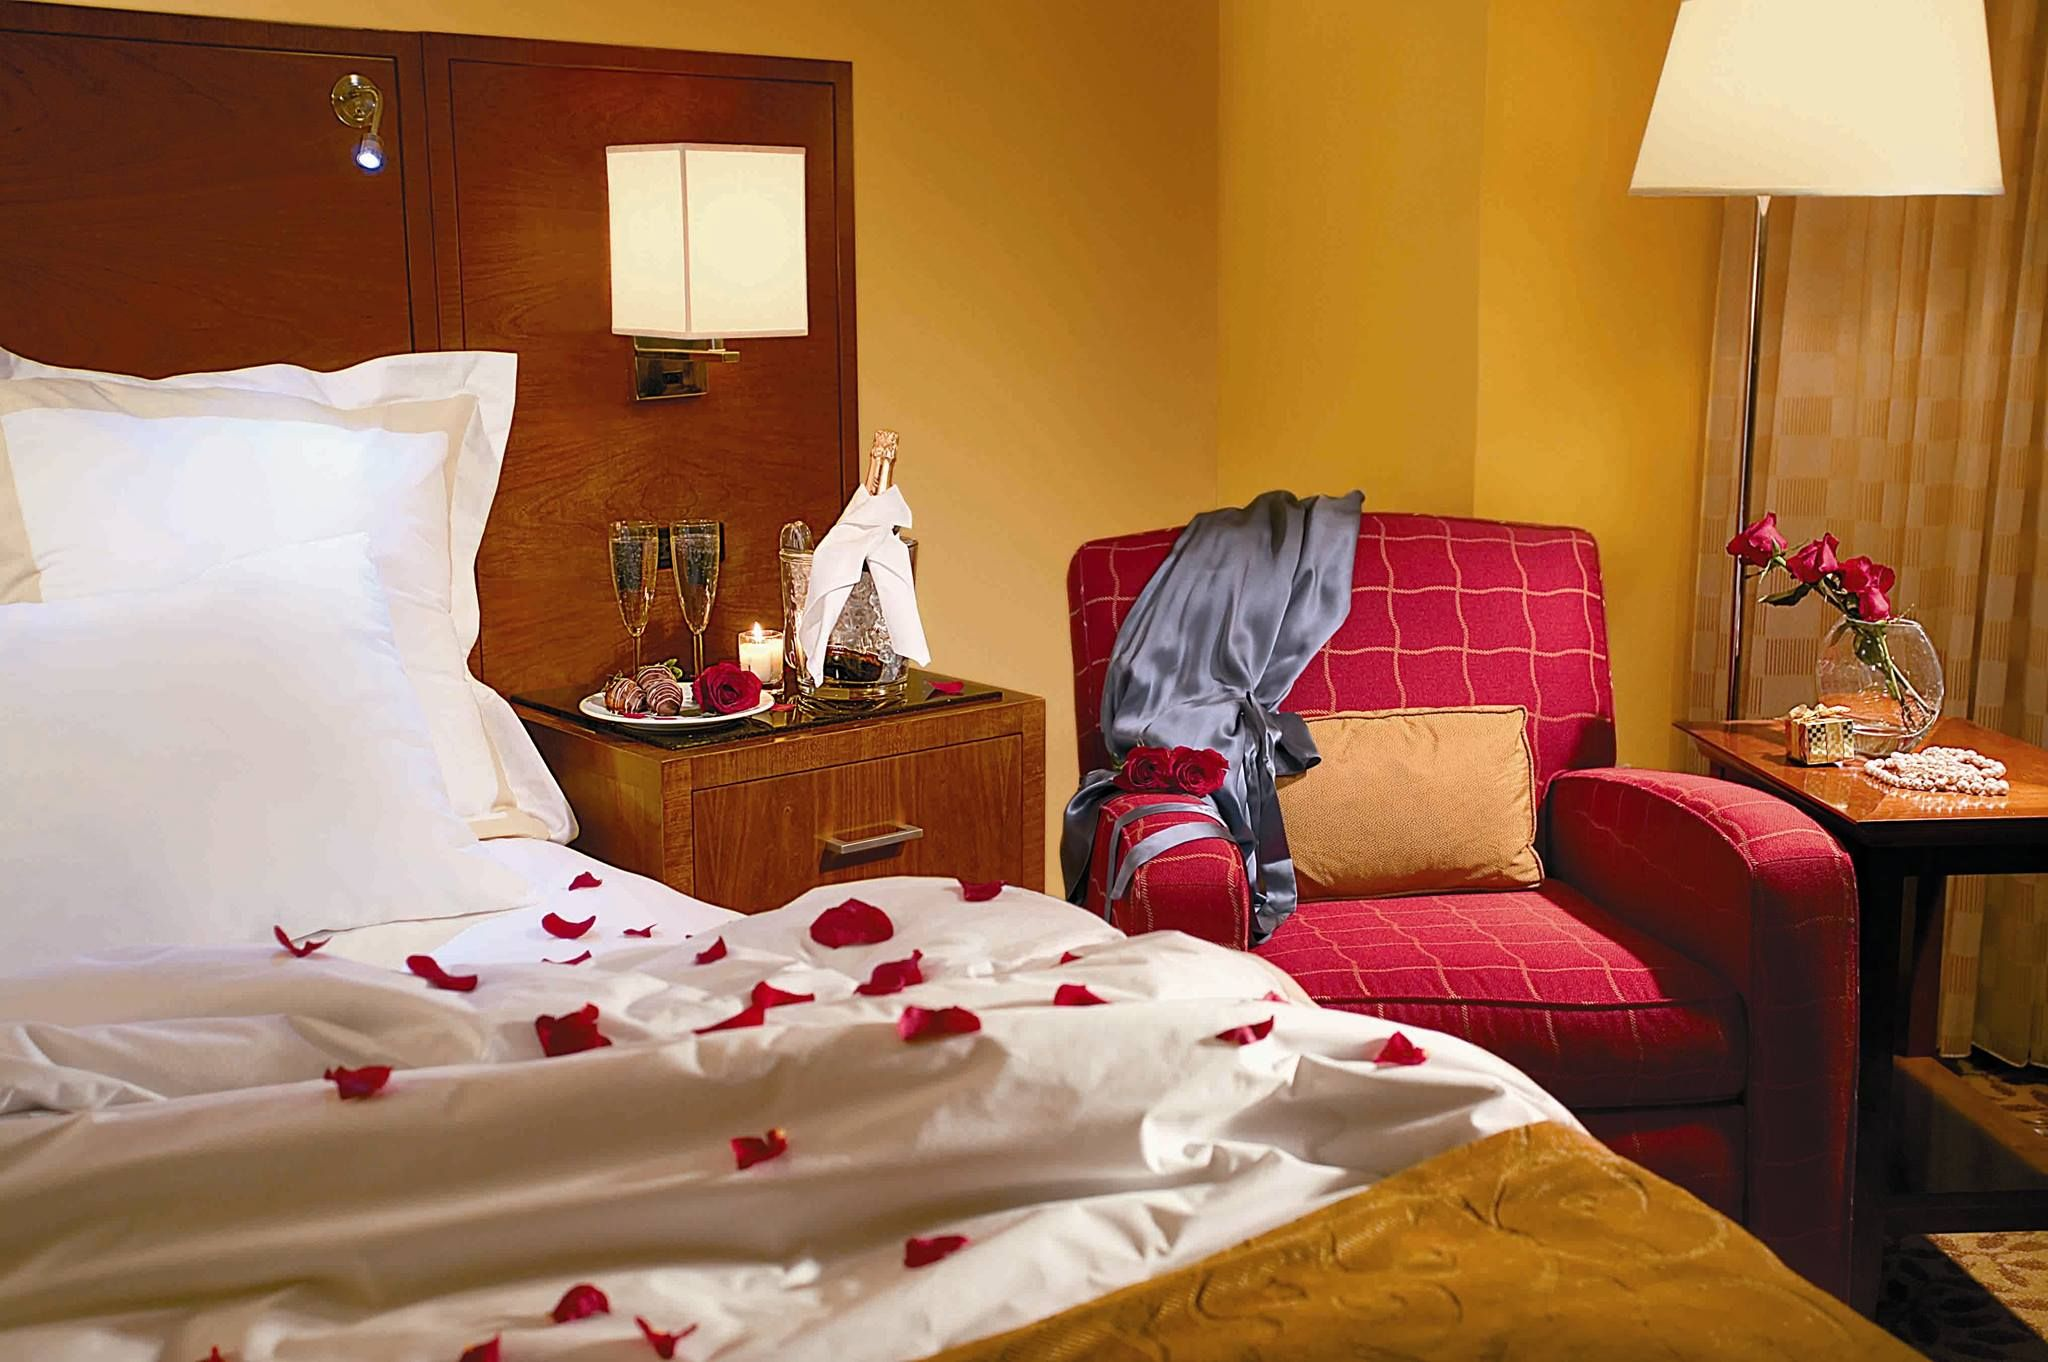 plan a romantic getaway or start off your honeymoon at the atlanta